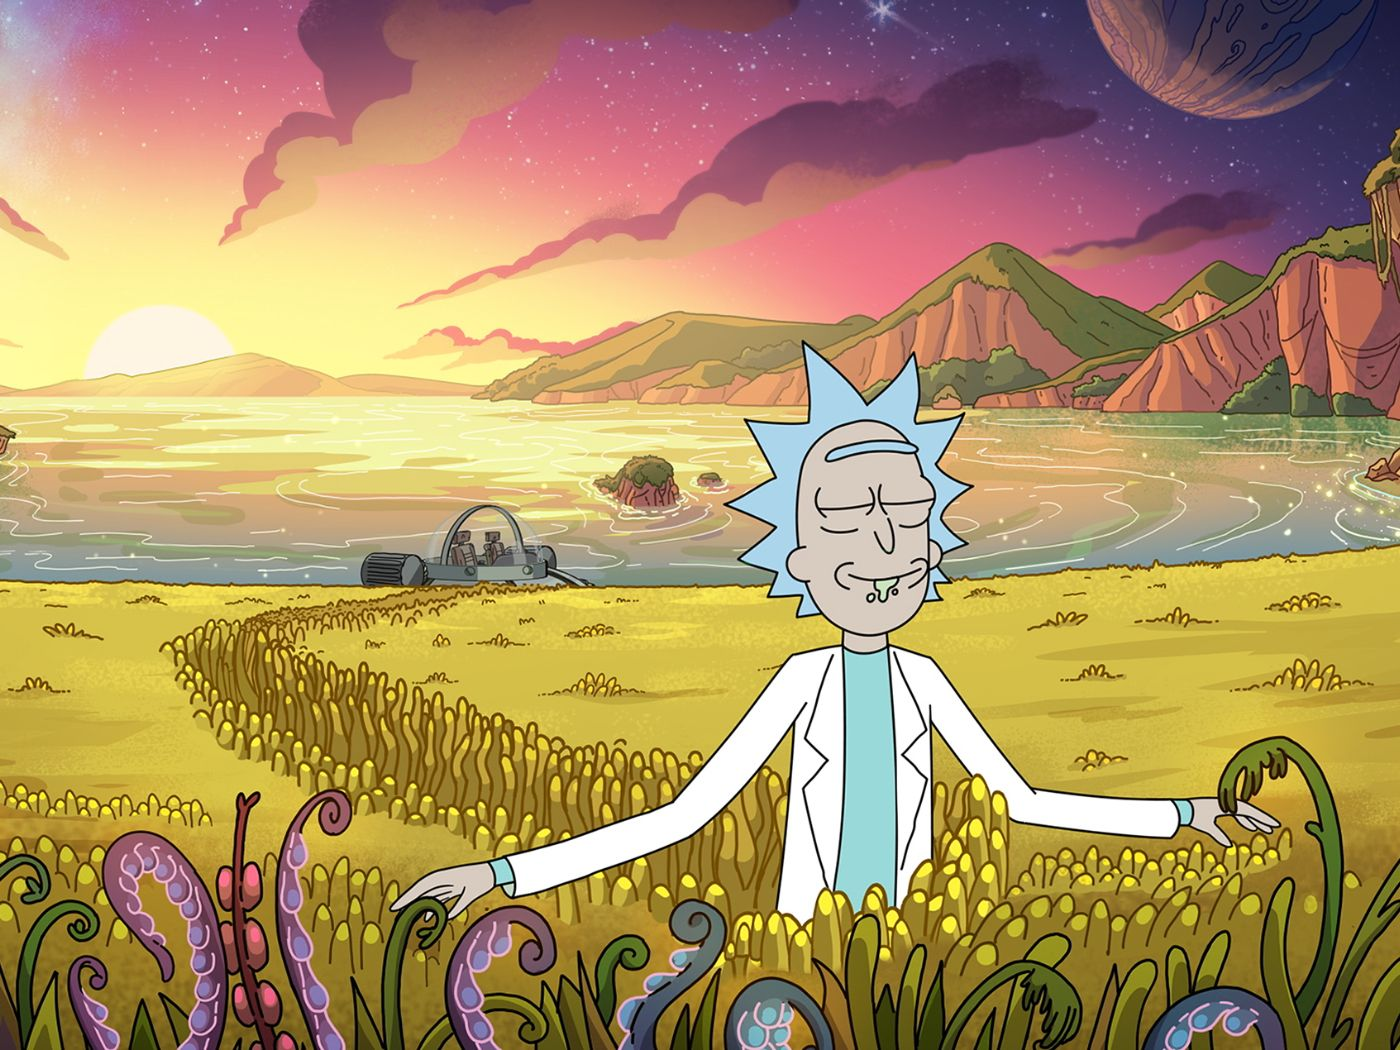 Rick And Morty Season 4 Premiere Every Death In The Episode